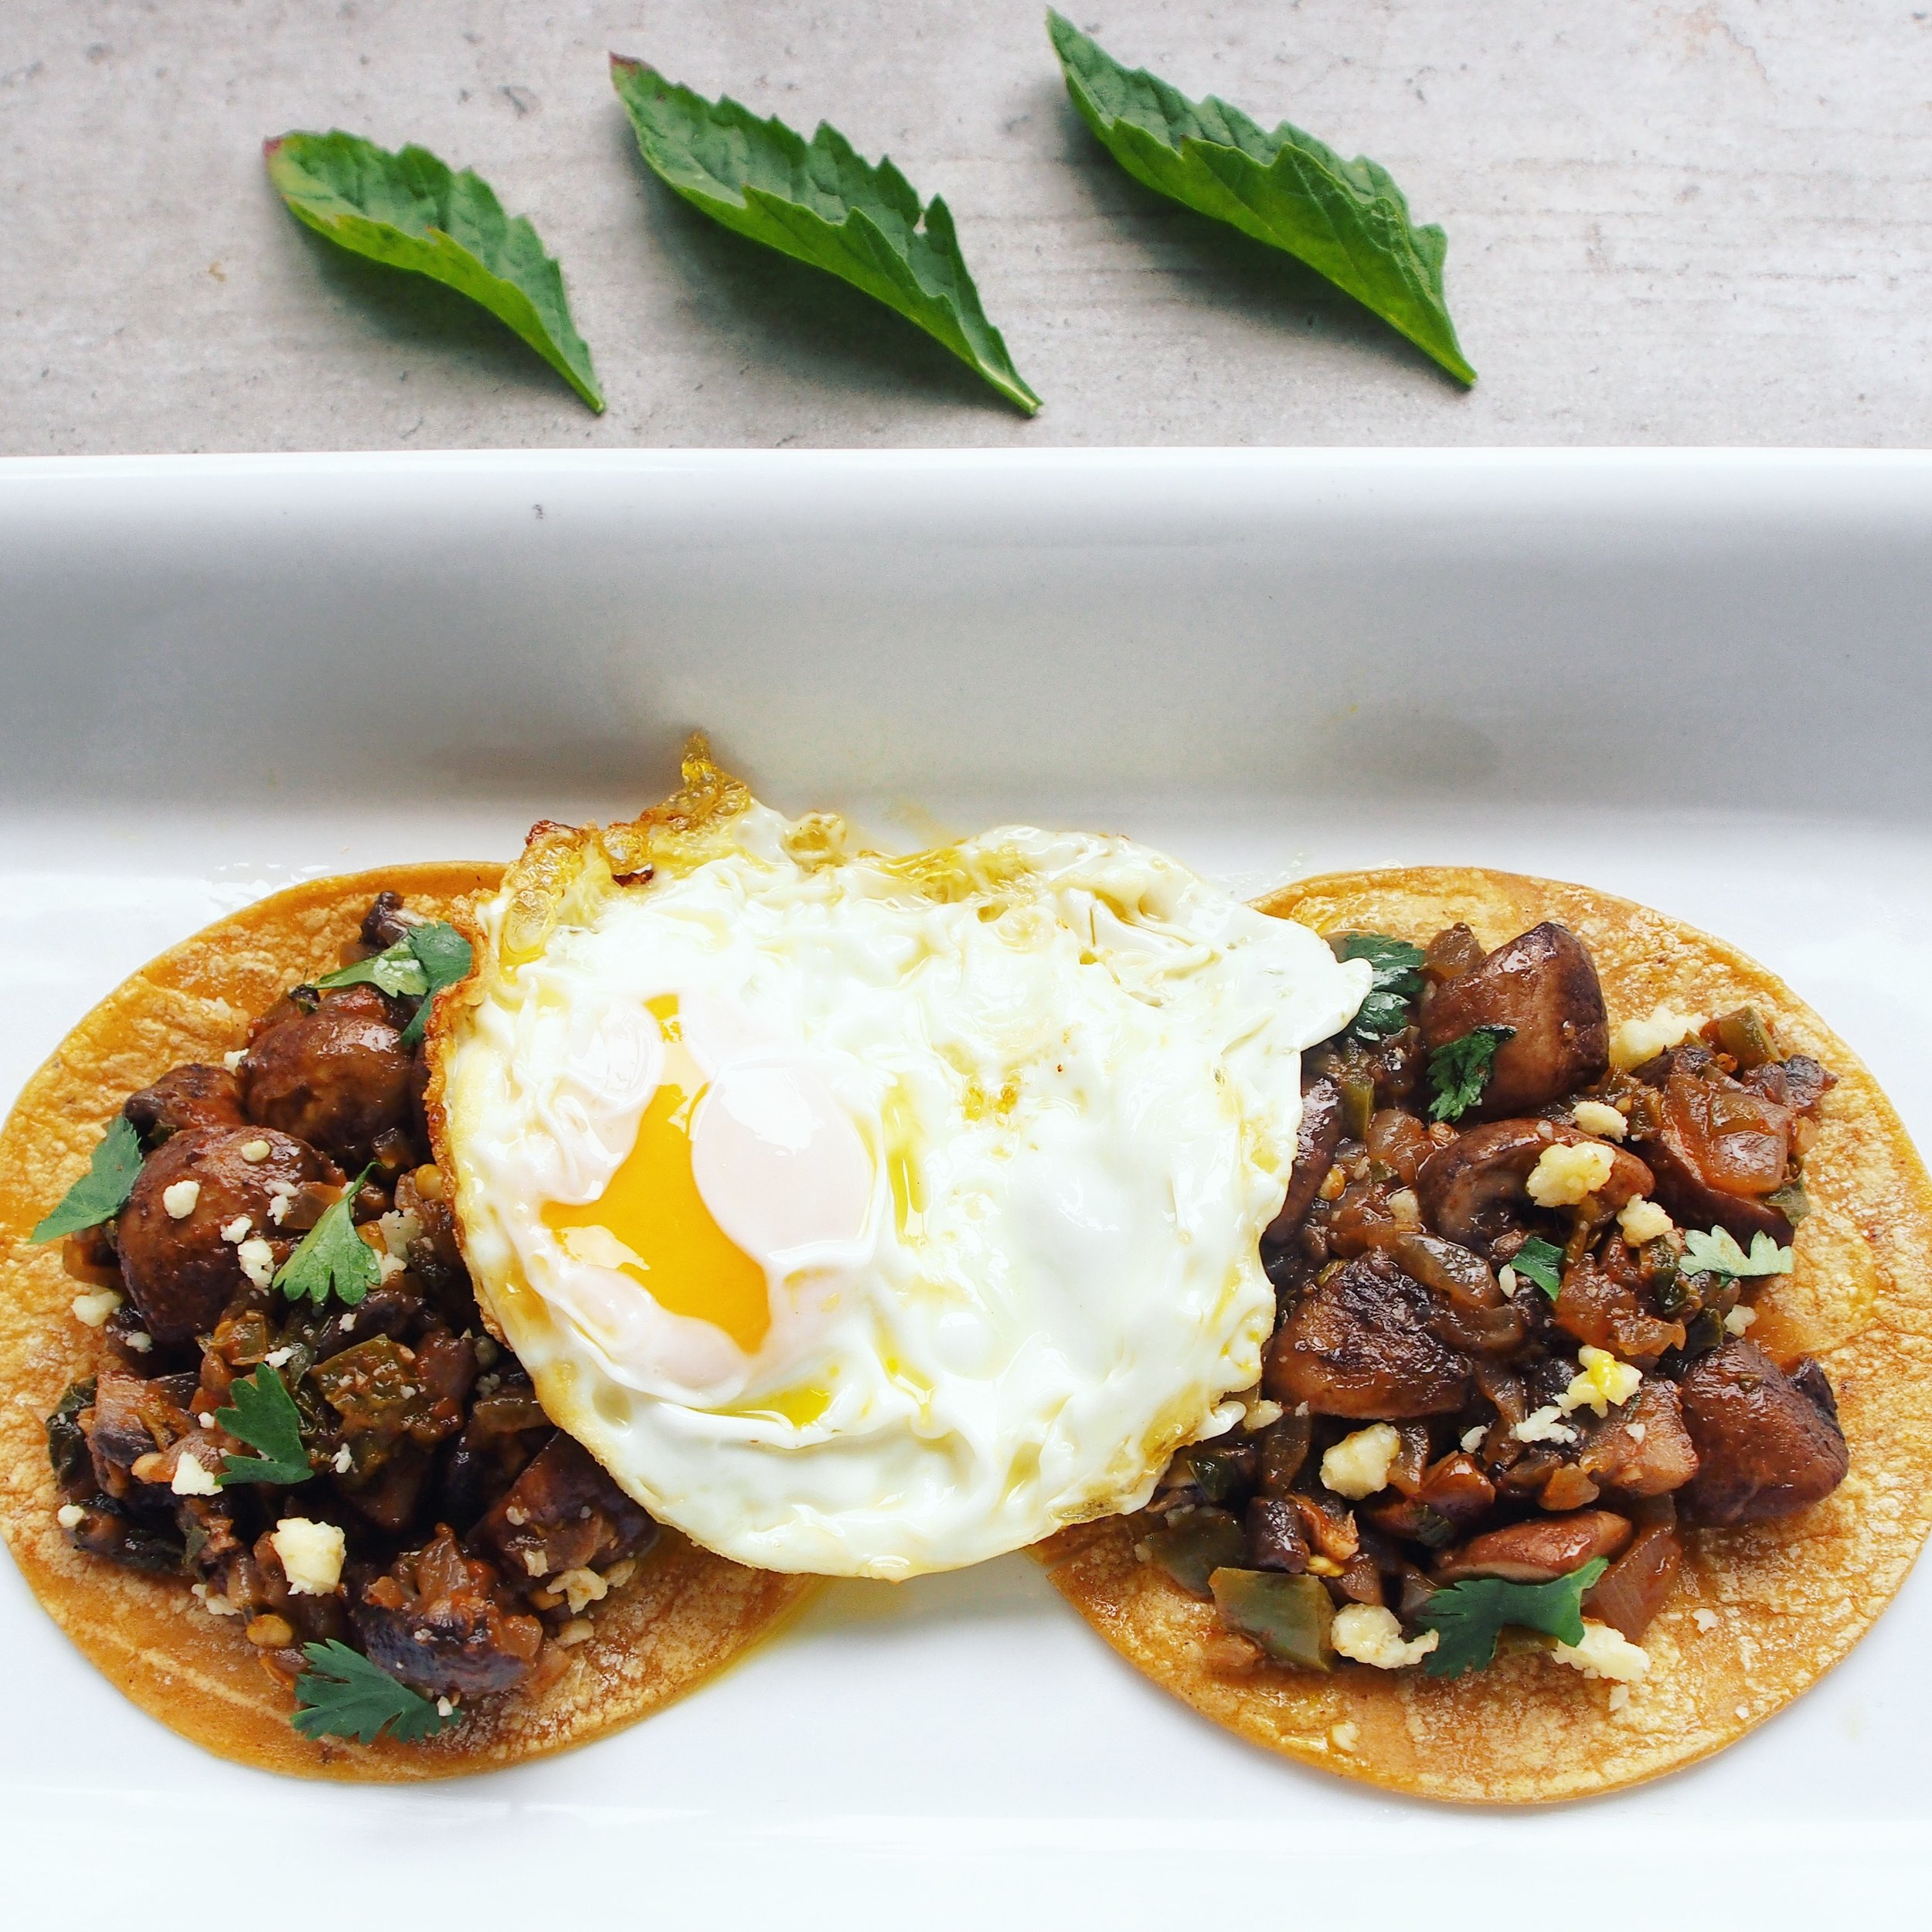 These mushroom tacos with fried eggs make for a great vegetarian taco recipe! They're some of the healthiest tacos you can make because mushrooms are rich in many important vitamins and minerals.